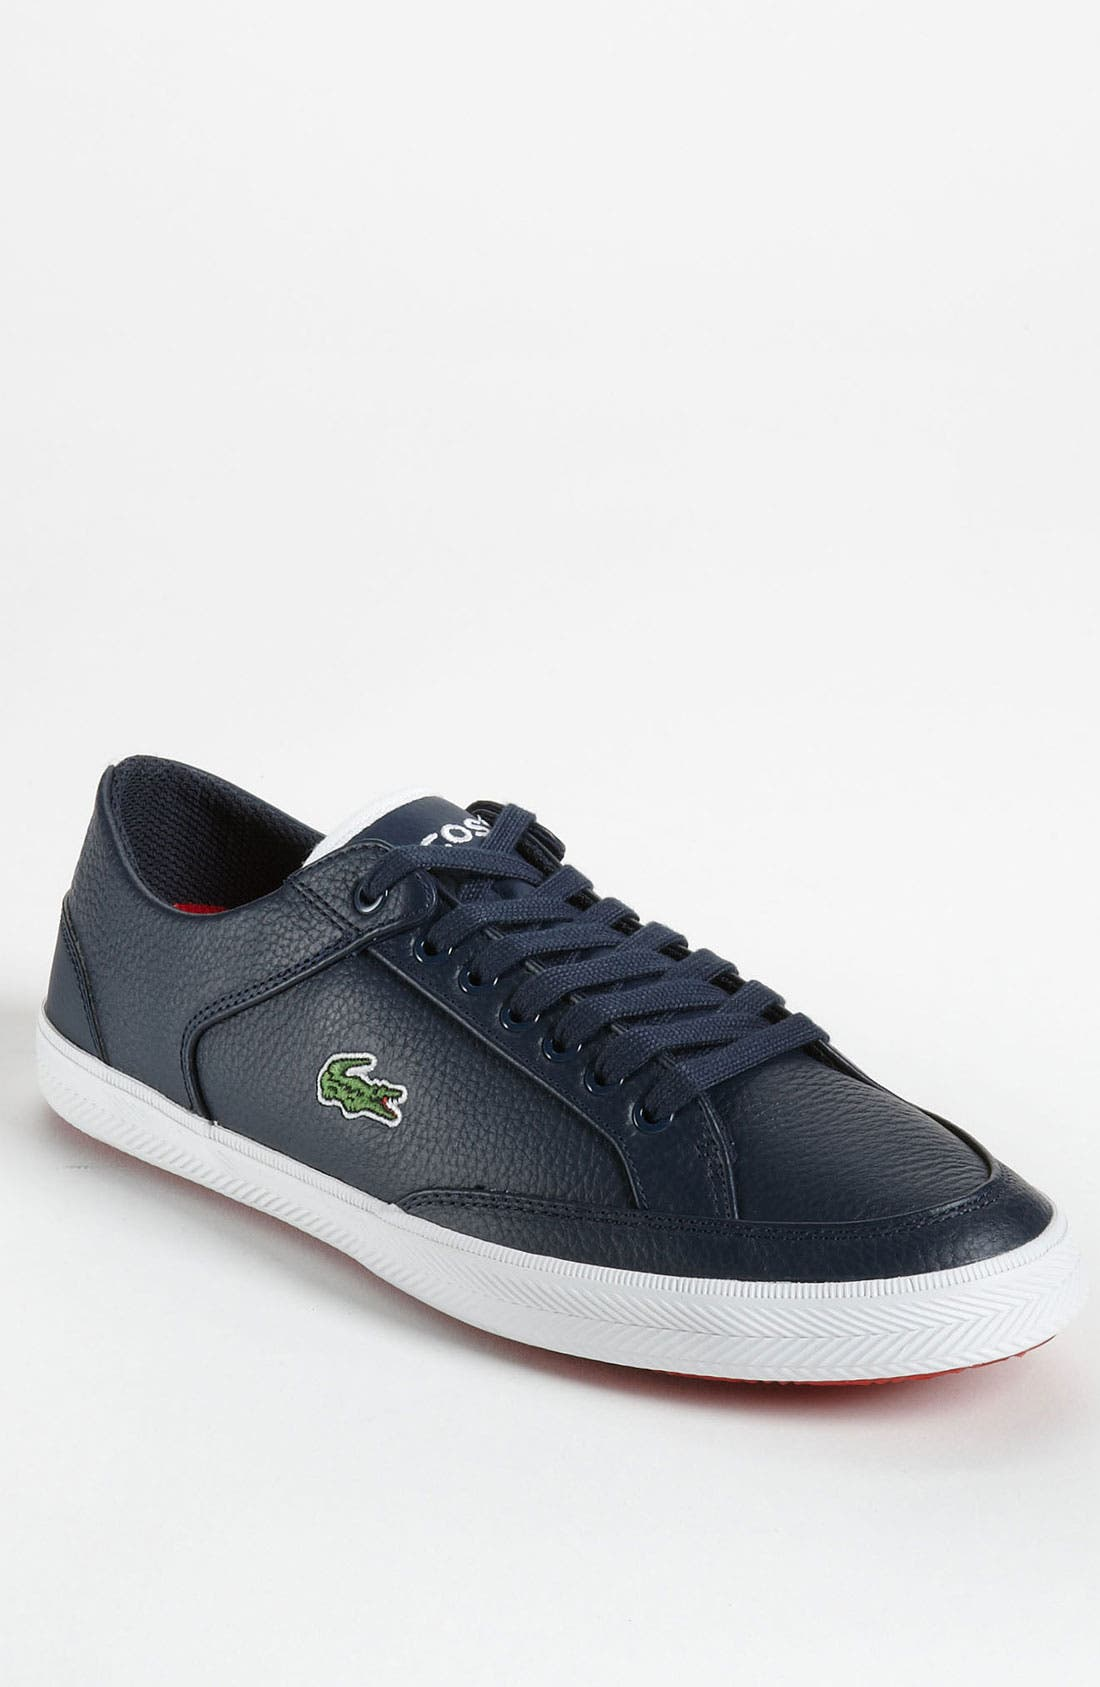 Alternate Image 1 Selected - Lacoste 'Haneda CIW' Sneaker (Online Exclusive)